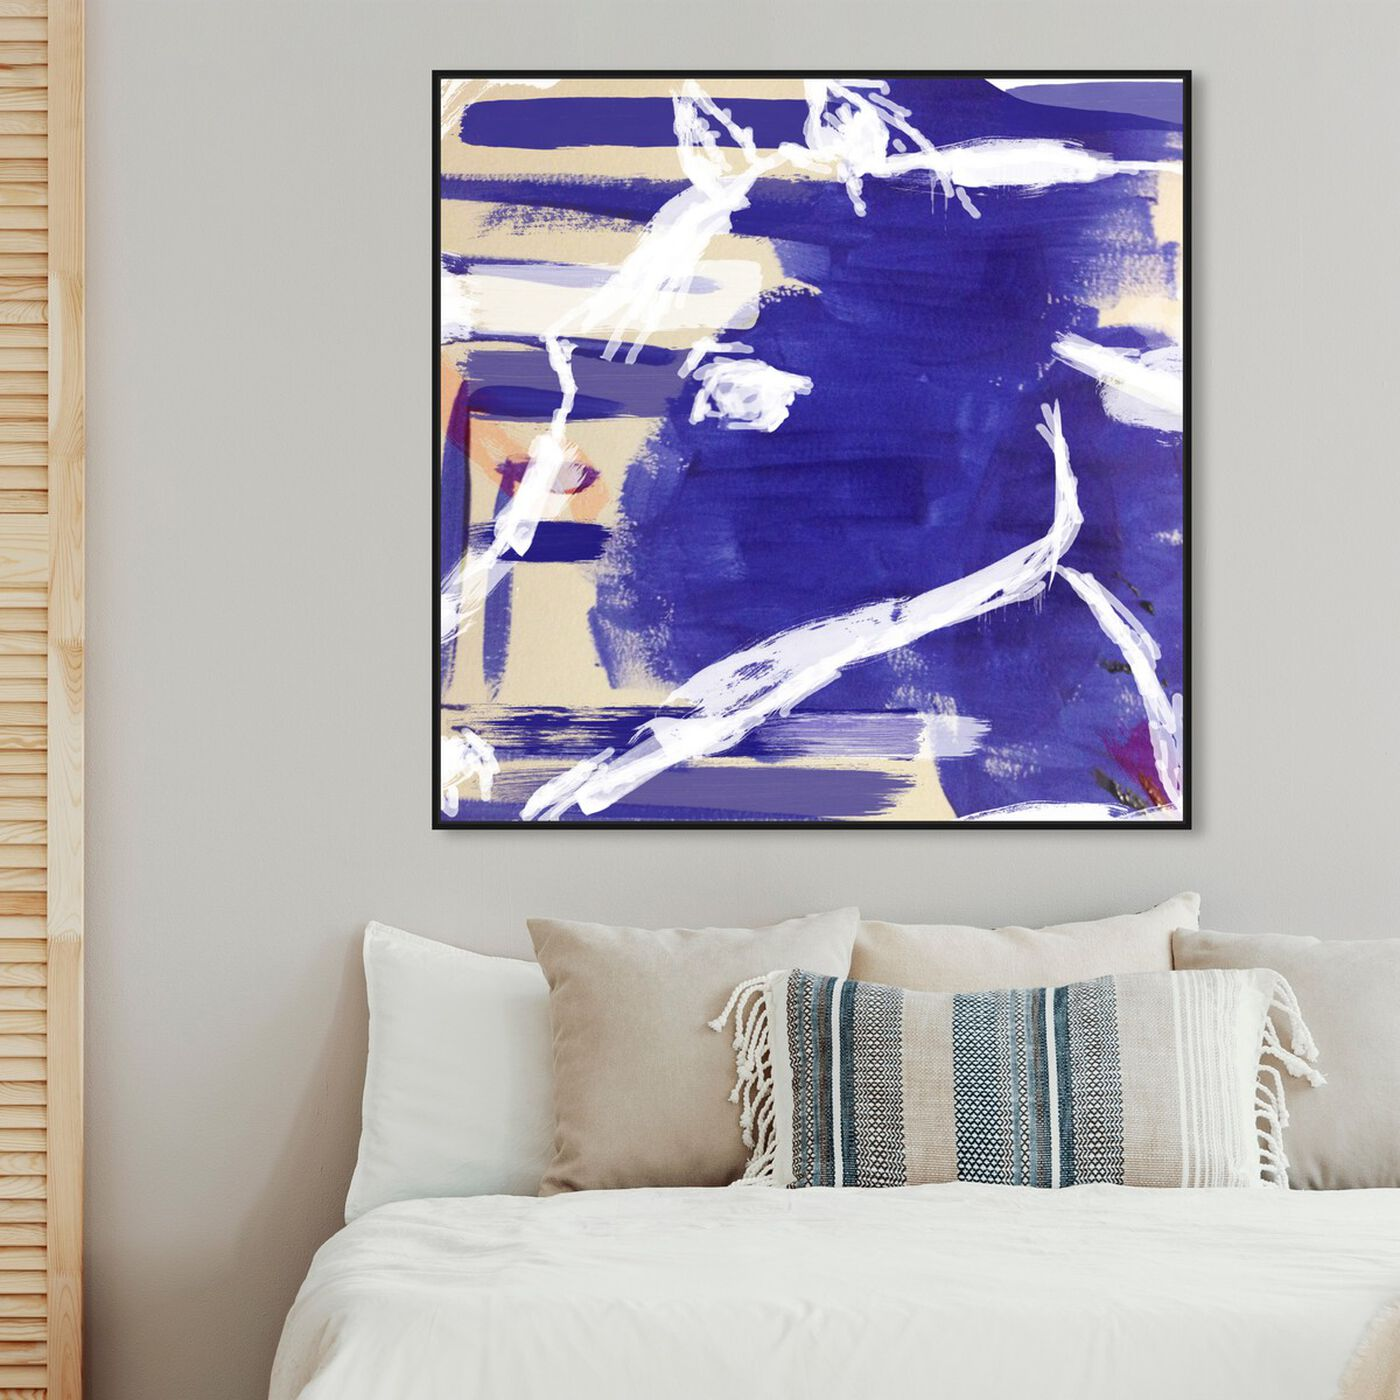 Hanging view of Equus featuring abstract and paint art.